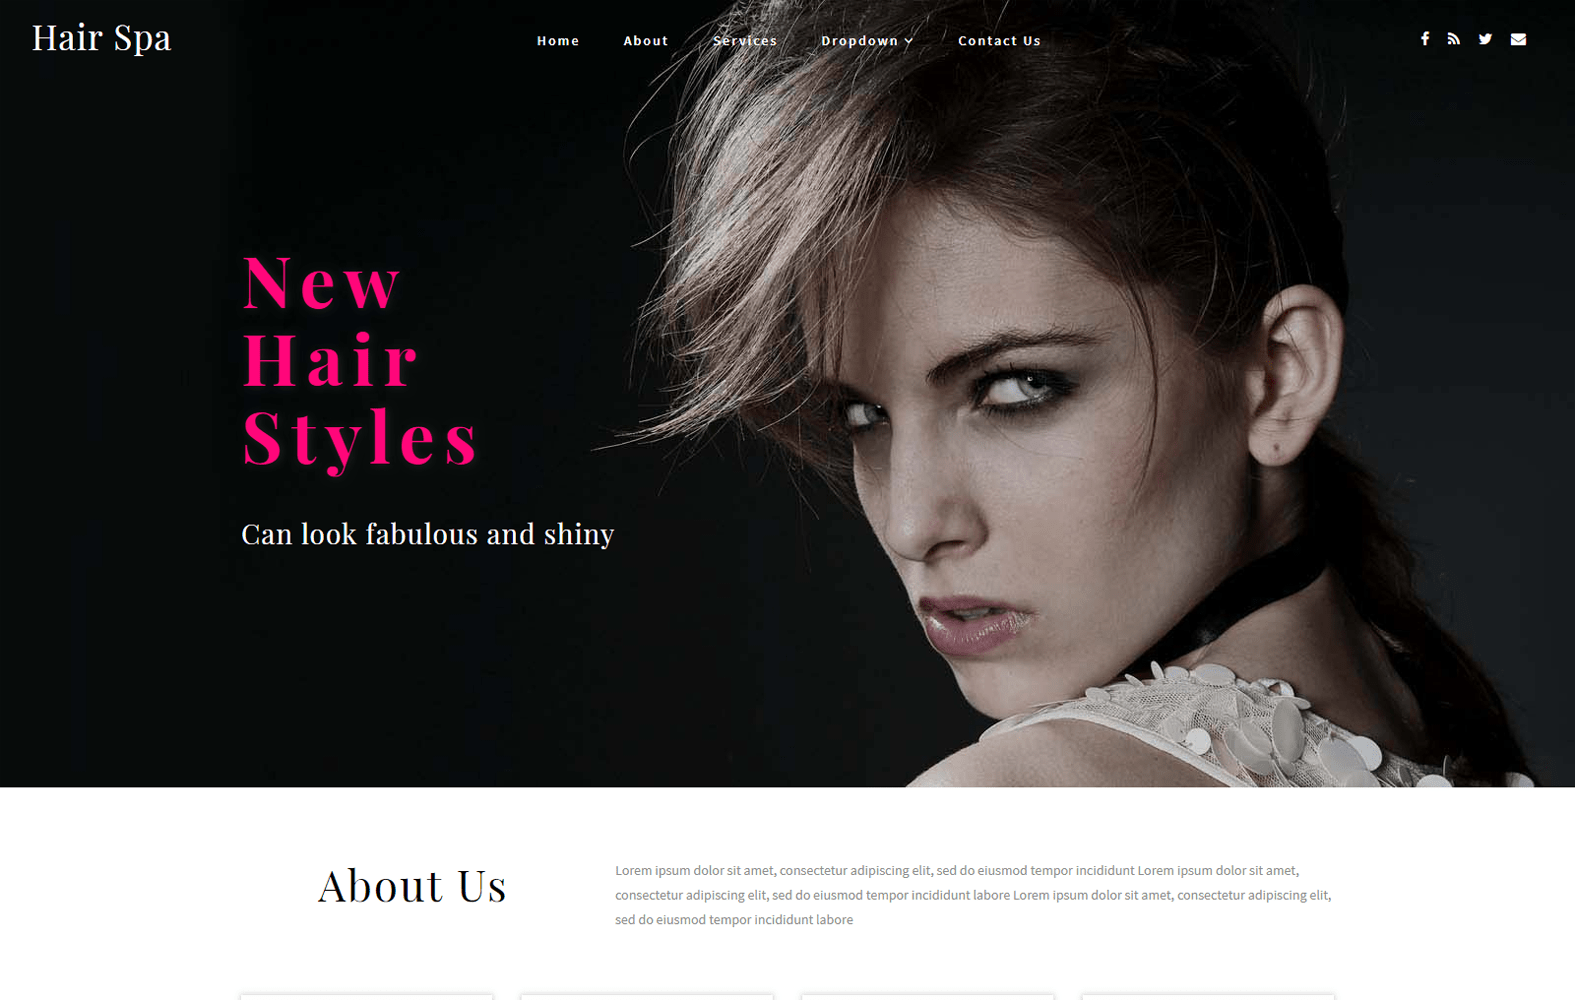 Hair Spa a Beauty and Spa Category Bootstrap Responsive Web Template